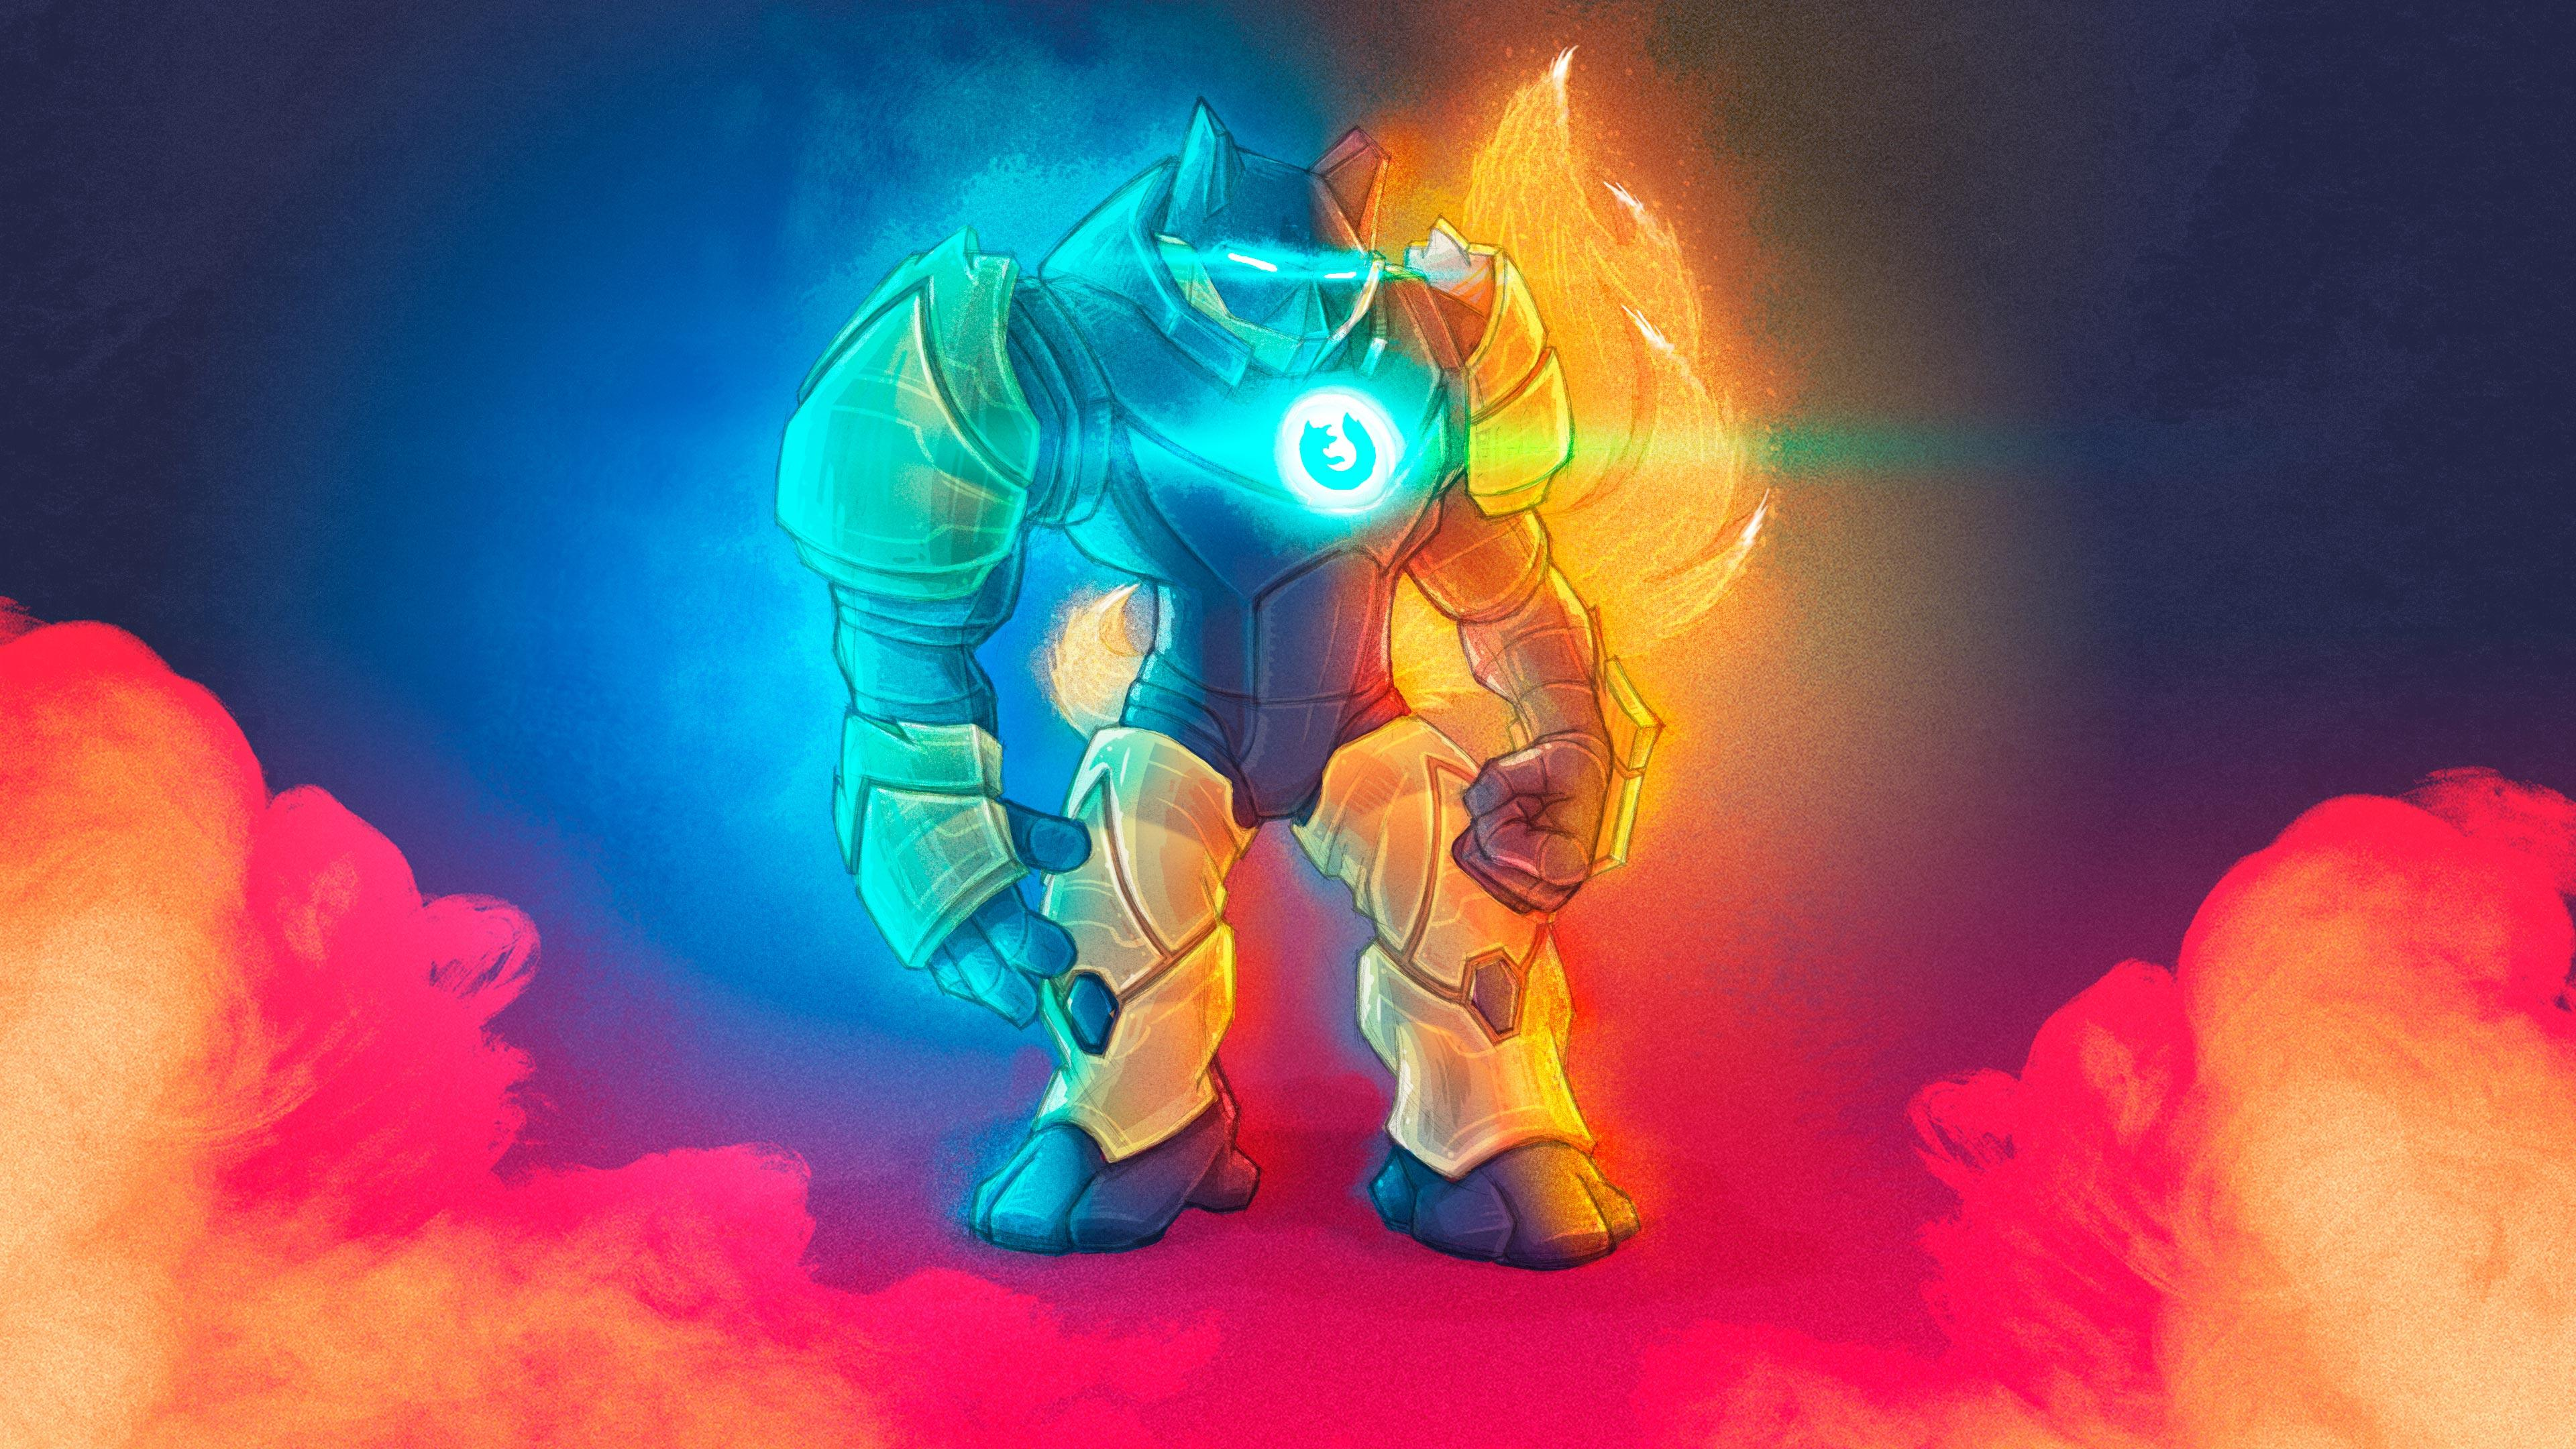 Mark 57, a Firefox-themed takeoff on an Iron Man suit, served as Mozilla's Quantum mascot.